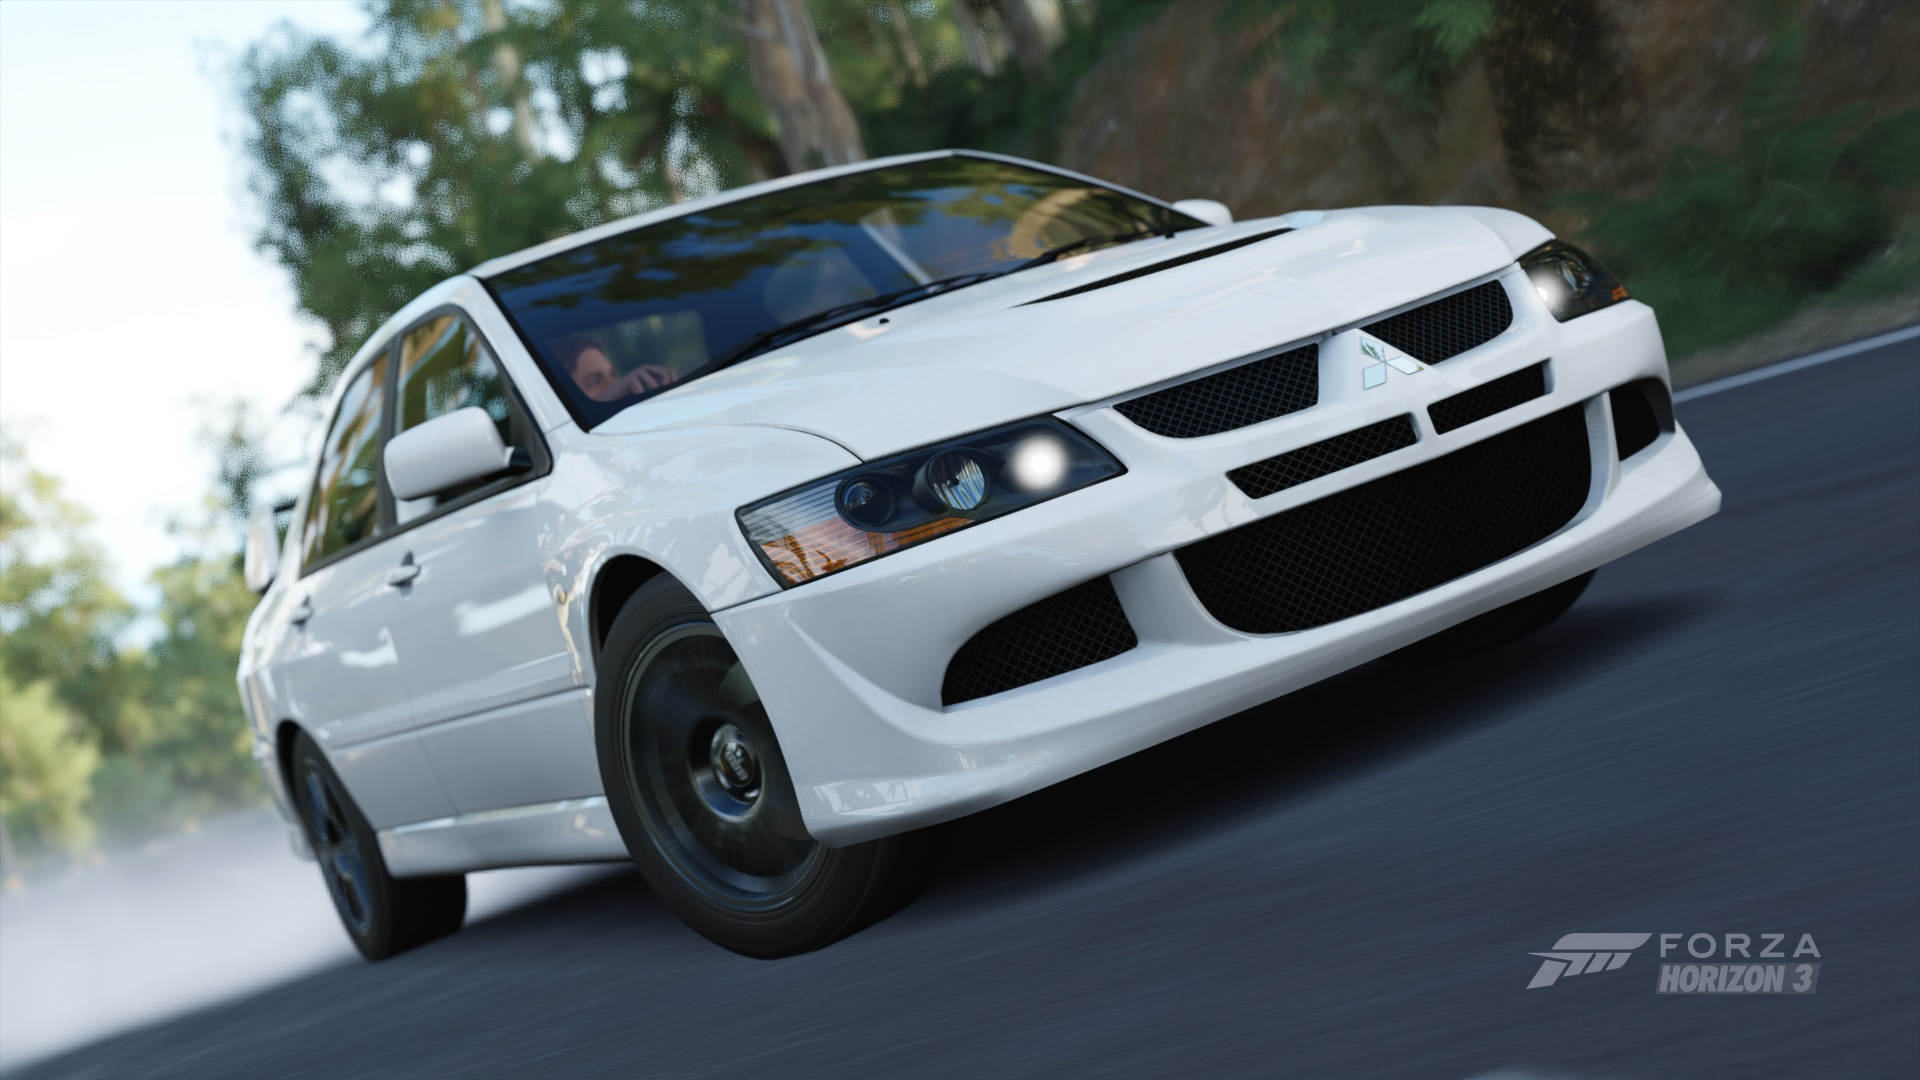 Forza Horizon 3 Cars Wiring Harness 2006 Mitsubishi Endevour 2004 Lancer Evolution Viii Mr Photo By Ninetyninexx